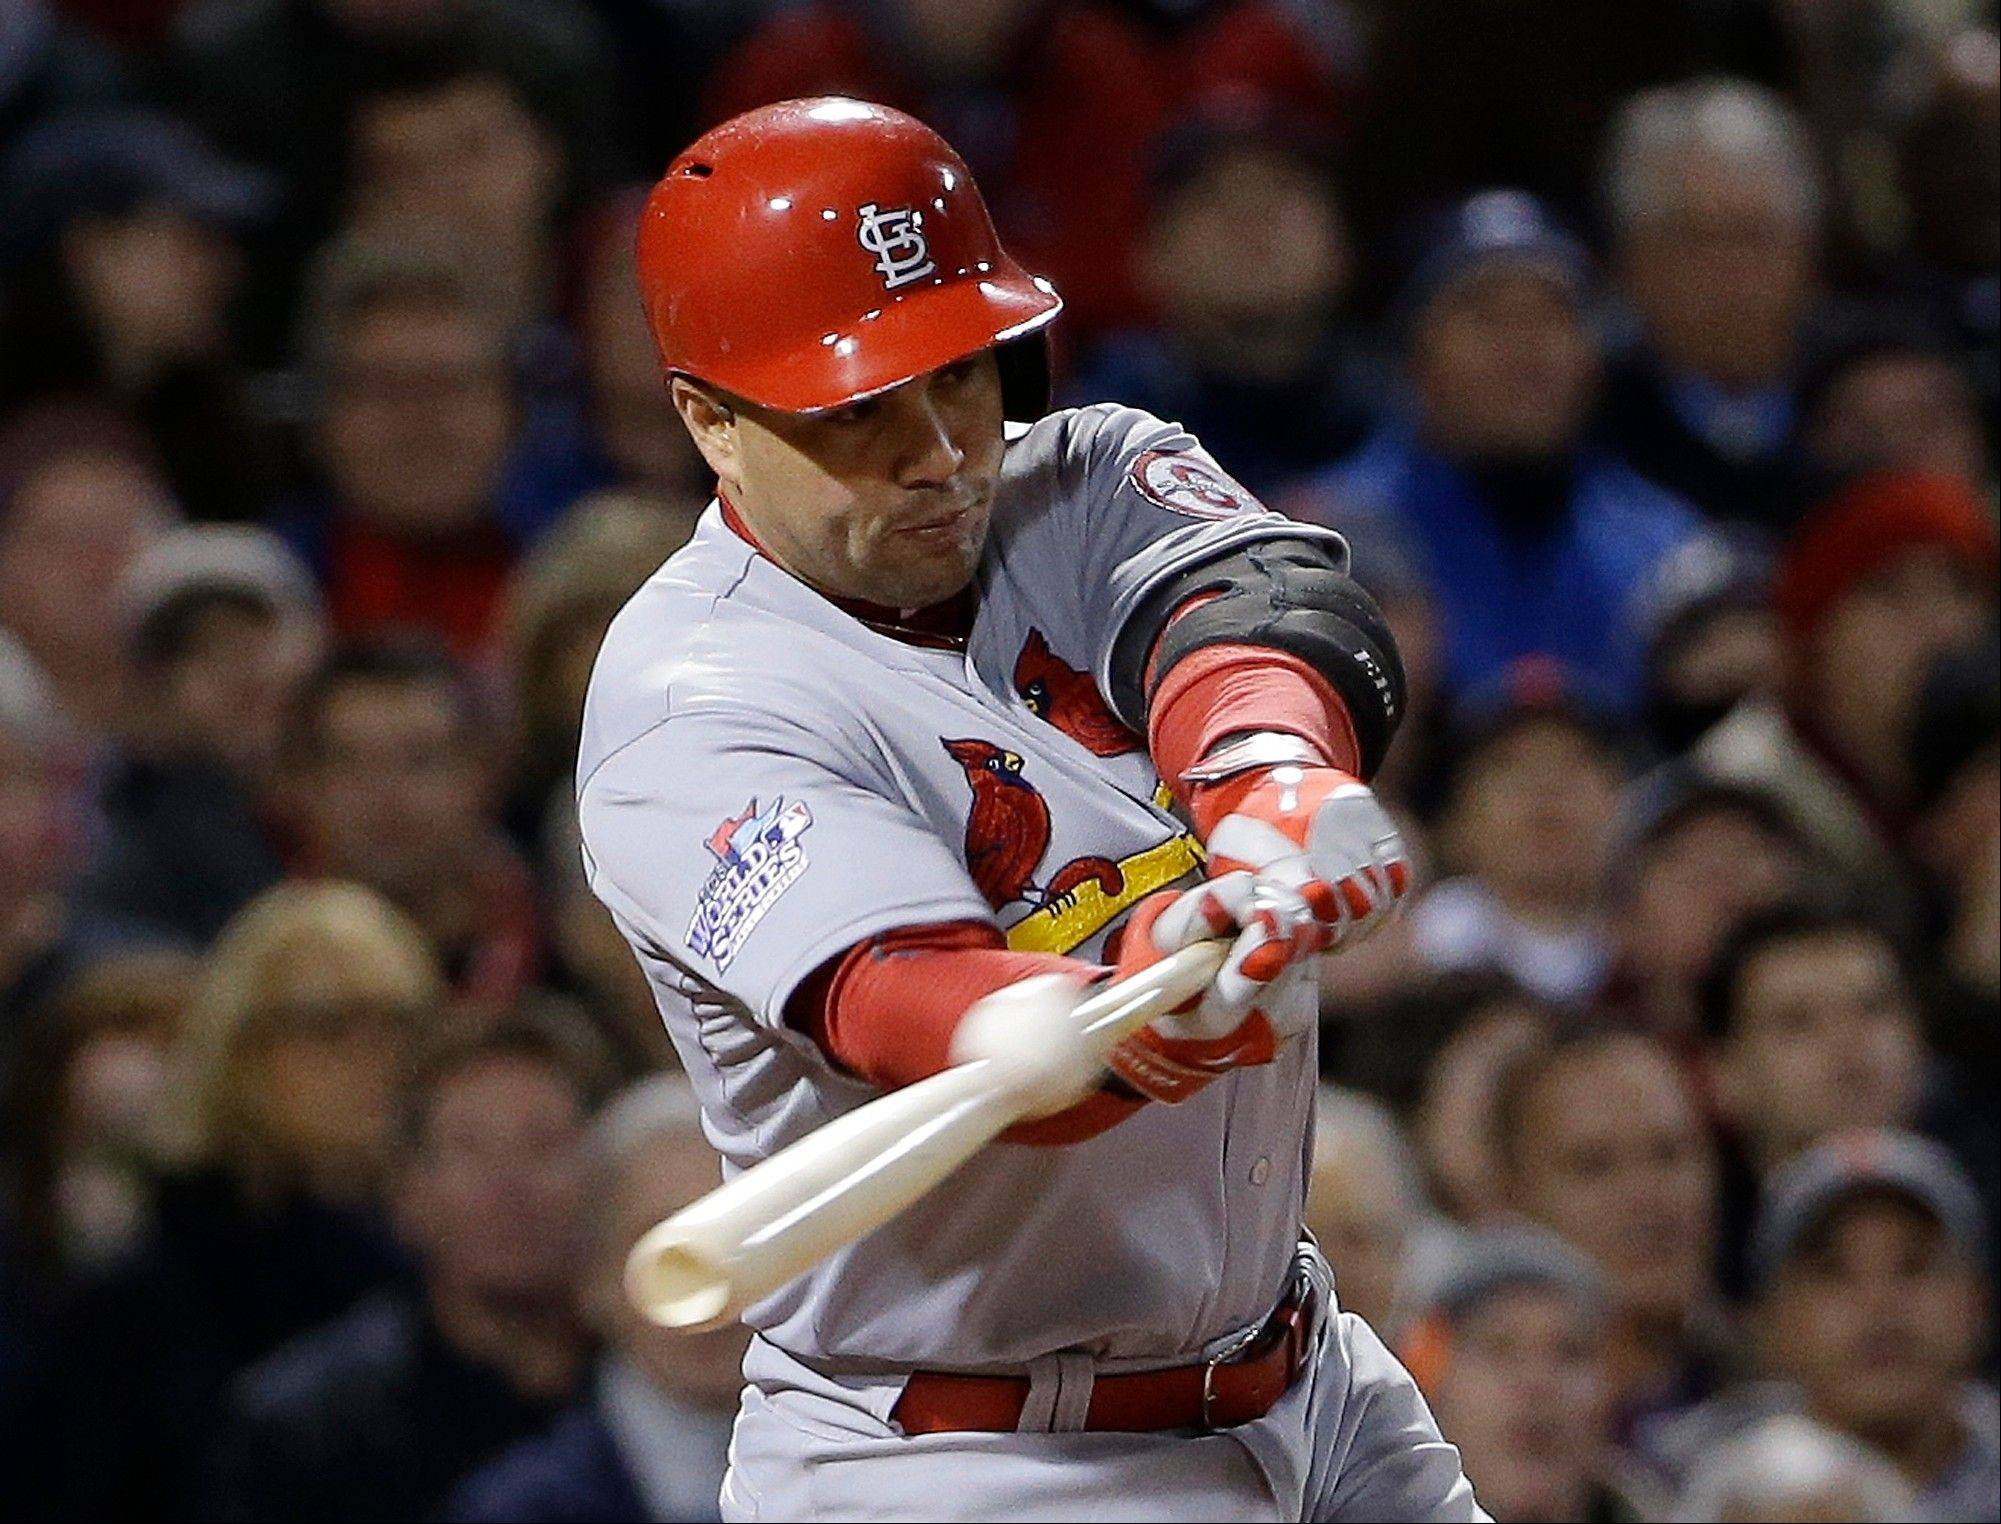 Carlos Beltran hits an RBI single for St. Louis during the seventh inning of Game 2.